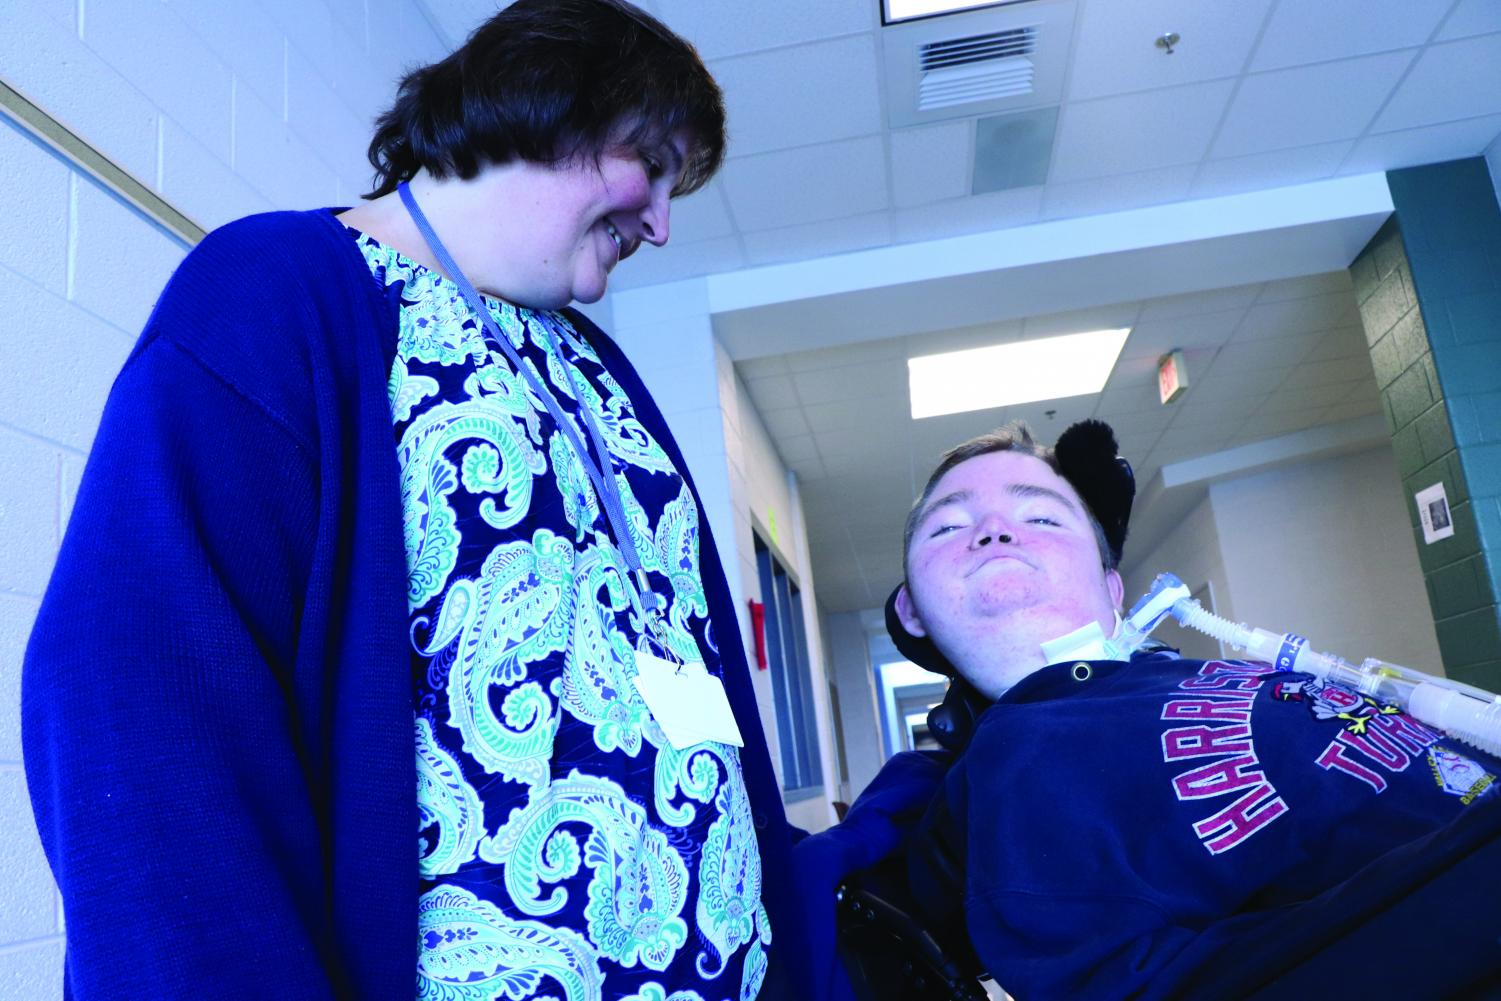 """Jimmy Barnes works with his nurse, Karen Zirk throughout the day. Shifflett stays with Barnes from 7 in the morning to 3 in the afternoon. """"I started working with Jimmy six years ago [and] not much has changed other than him losing a little more body function,"""" Shifflett said. """"He used to be able to do his right elbow and move it back, [but] he slowly lost that function."""""""